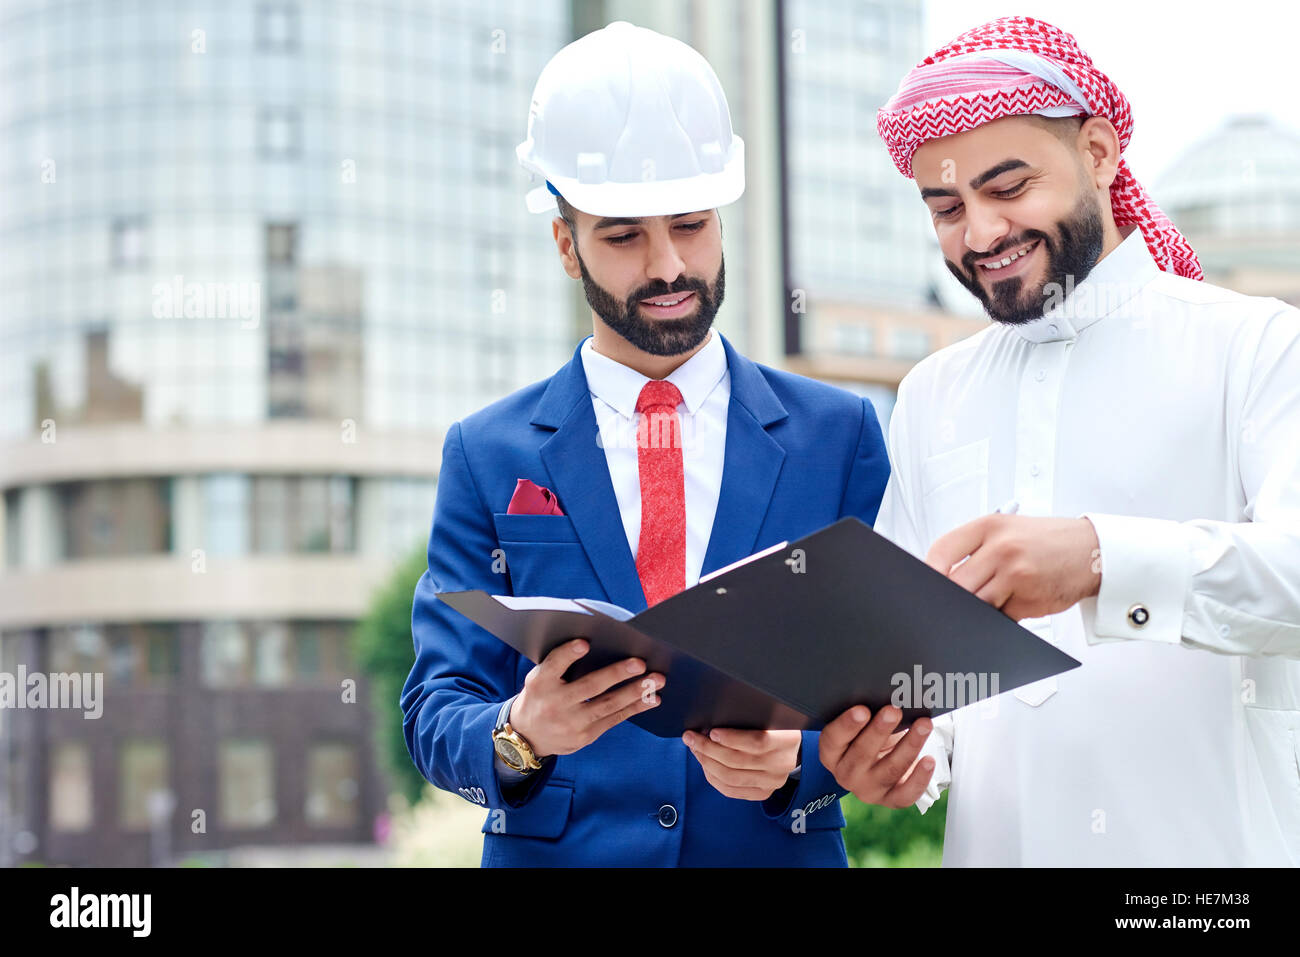 Concluding the deal. Horizontal portrait of an architect signing papers on a clipboard with his Saudi client - Stock Image